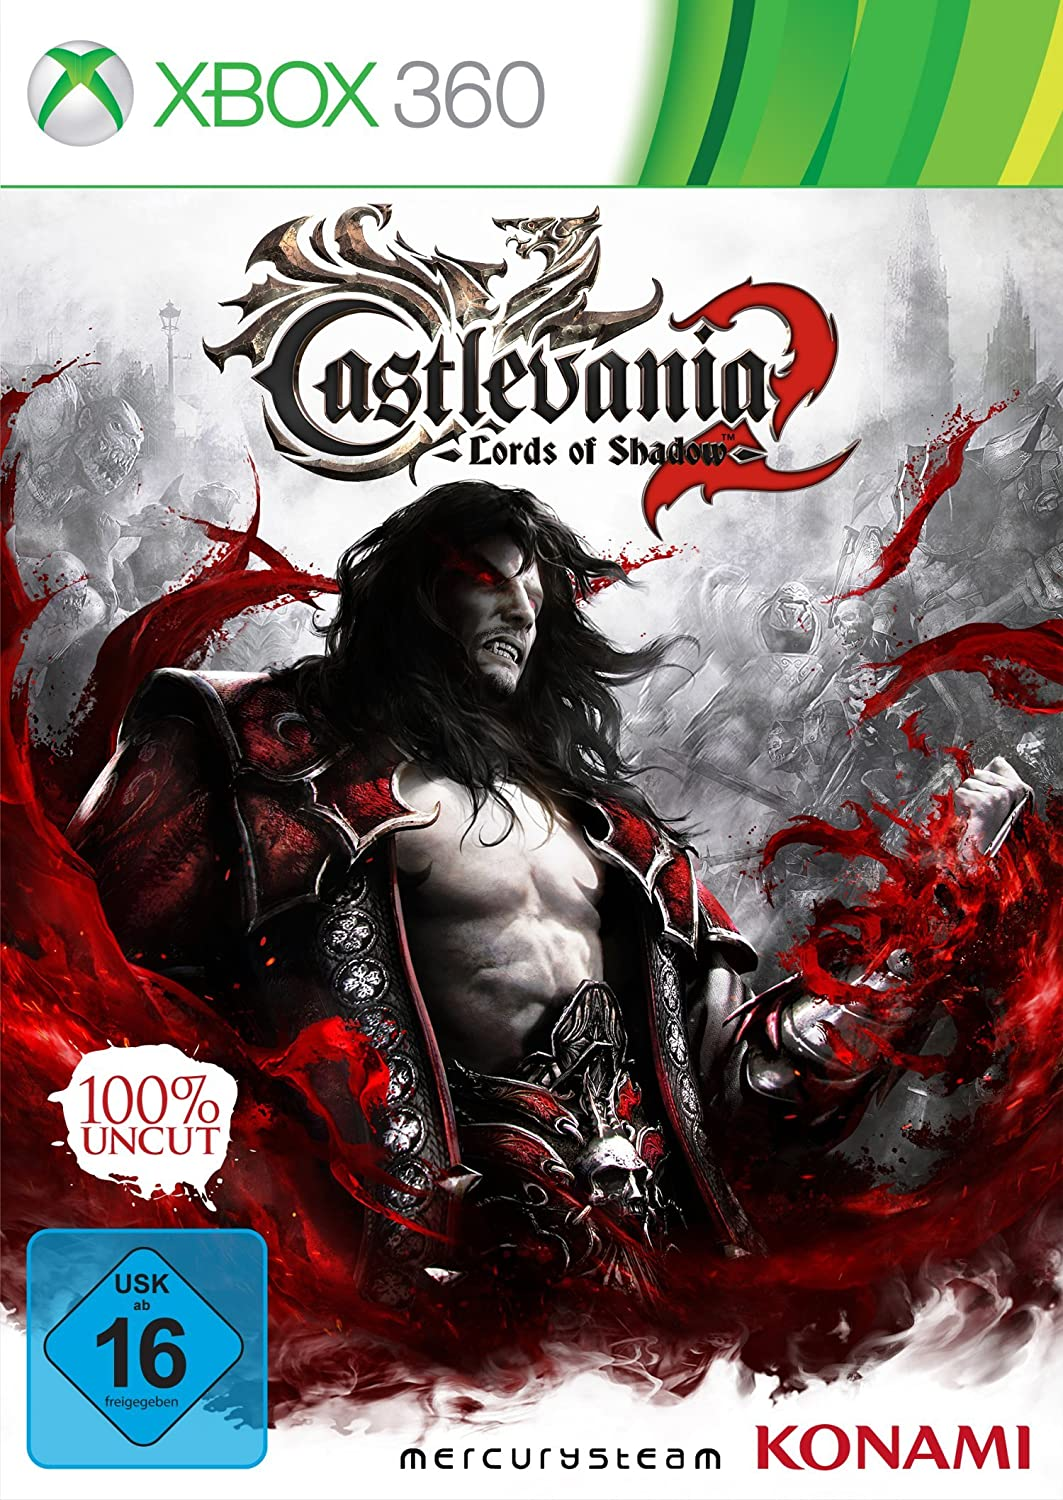 Castlevania: Lords of Shadows 2, Xbox 360